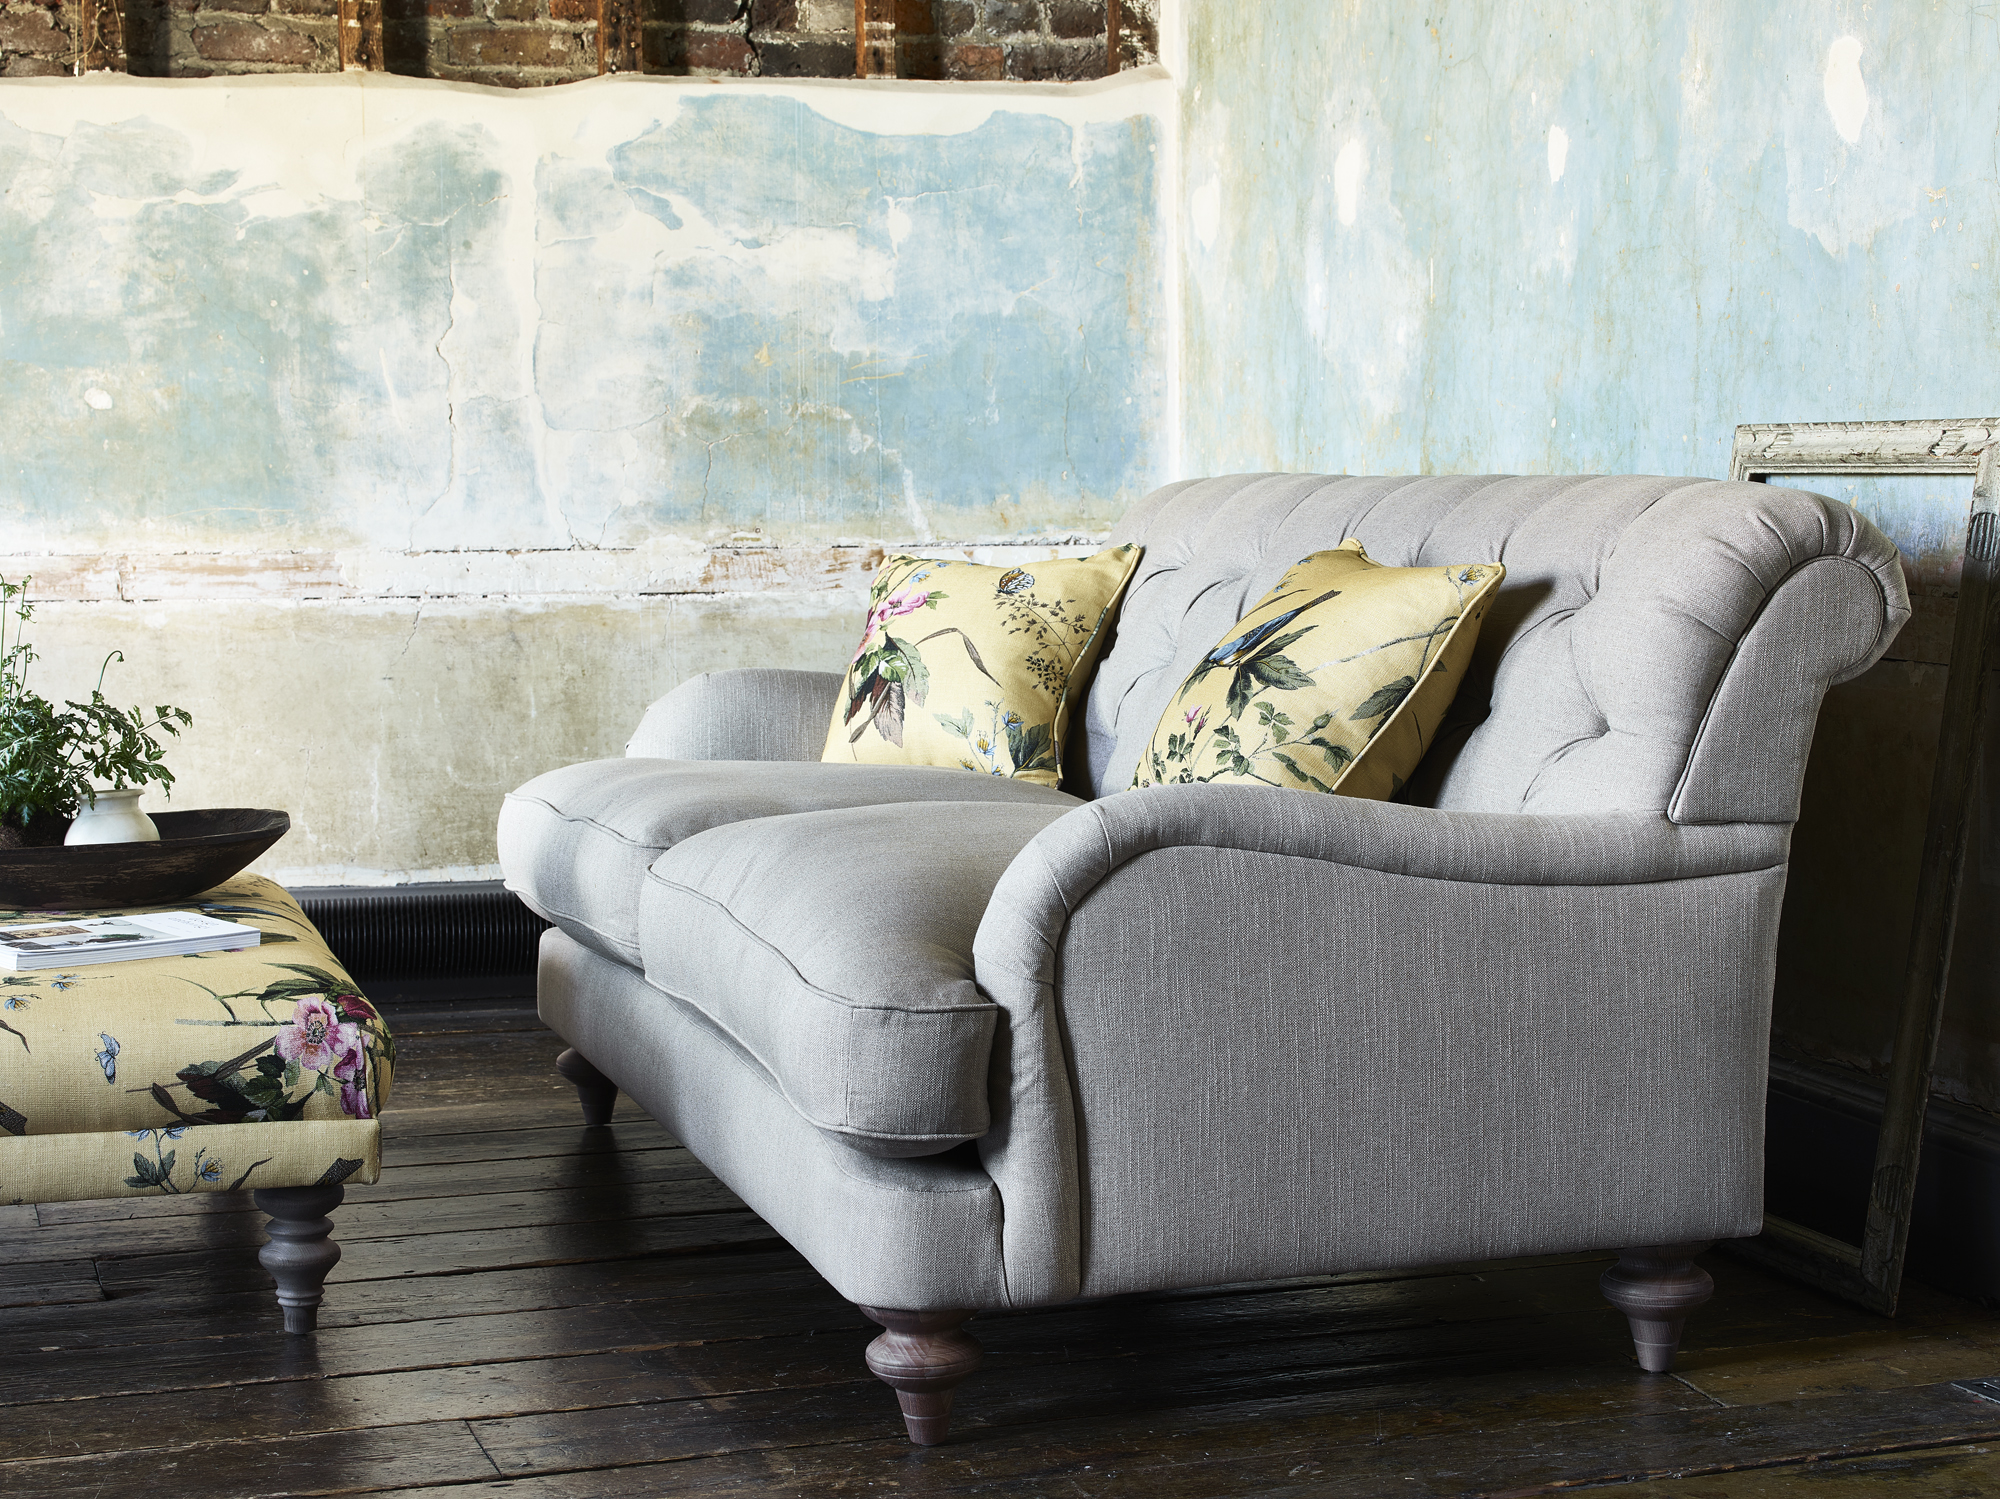 Superior Coach House Is An Exclusive Collection Of Beautiful Timeless Upholstery  Using The Best Natural Leathers And Fabrics To Create The Perfect And Most  ...